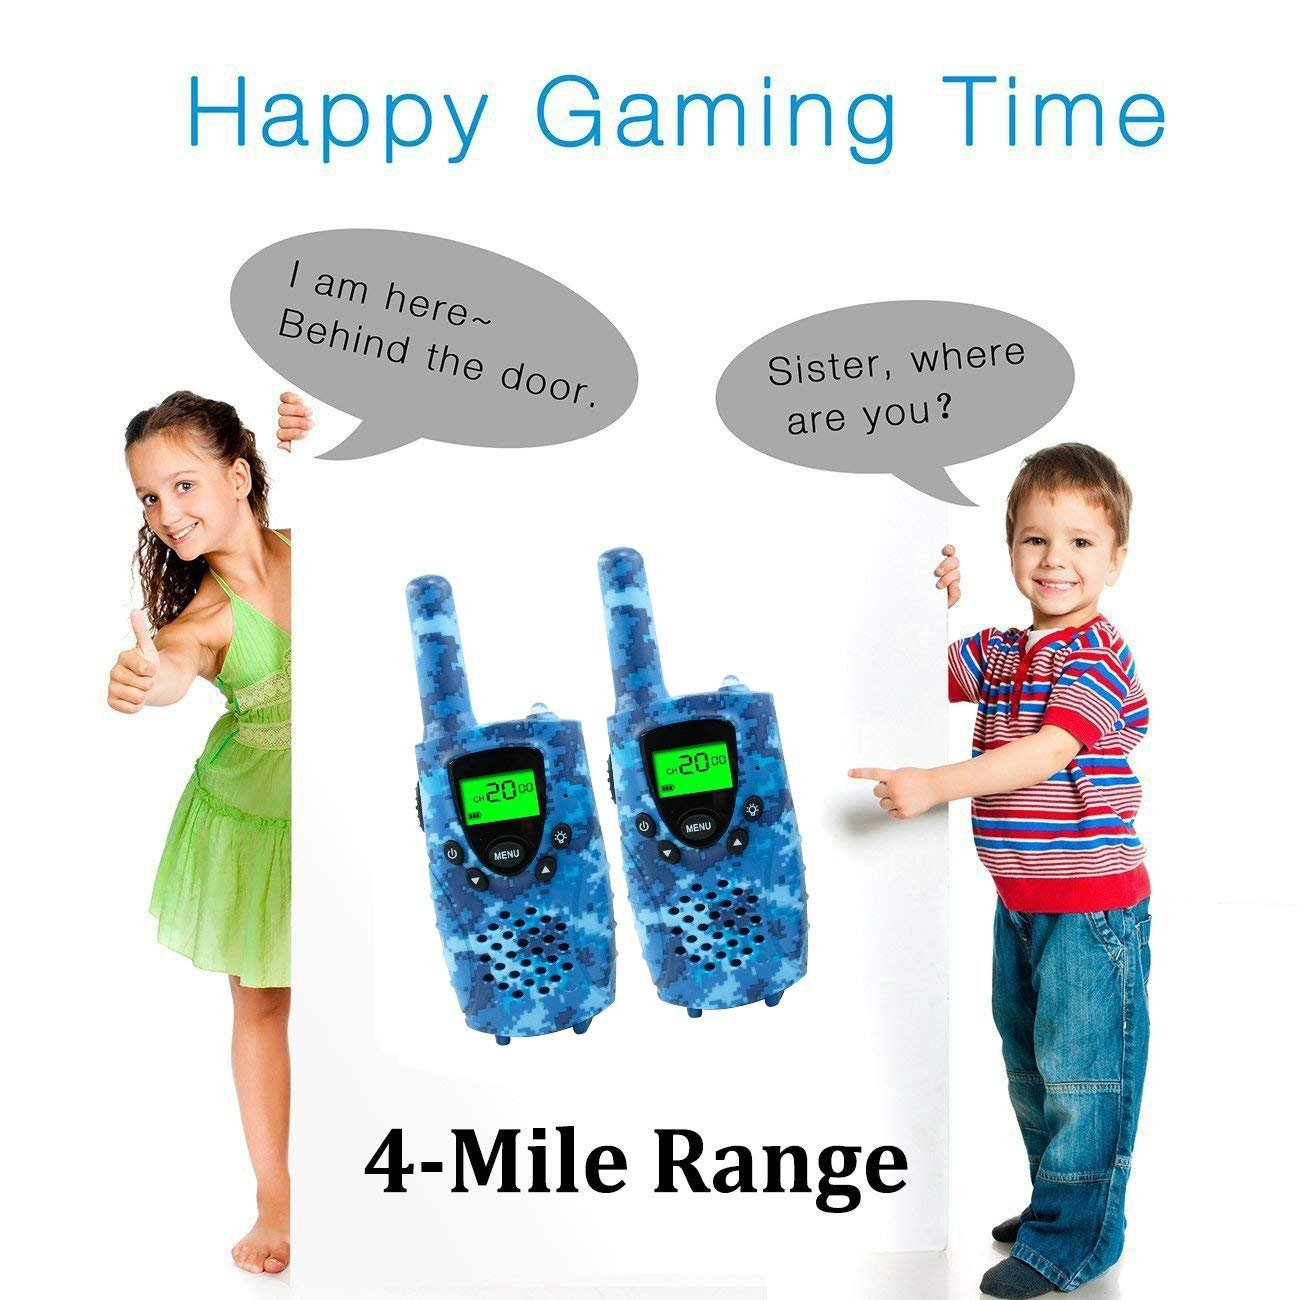 FAYOGOO Kids Walkie Talkies, Birthday Presents for Kids, 22-Channel FRS/GMRS Radio, up to 4-Mile Range Two Way Radios, Best Toys for 3 4 5 6 7 8 9 10 Year Old Boys & Girls (Camo Blue) by FAYOGOO (Image #5)